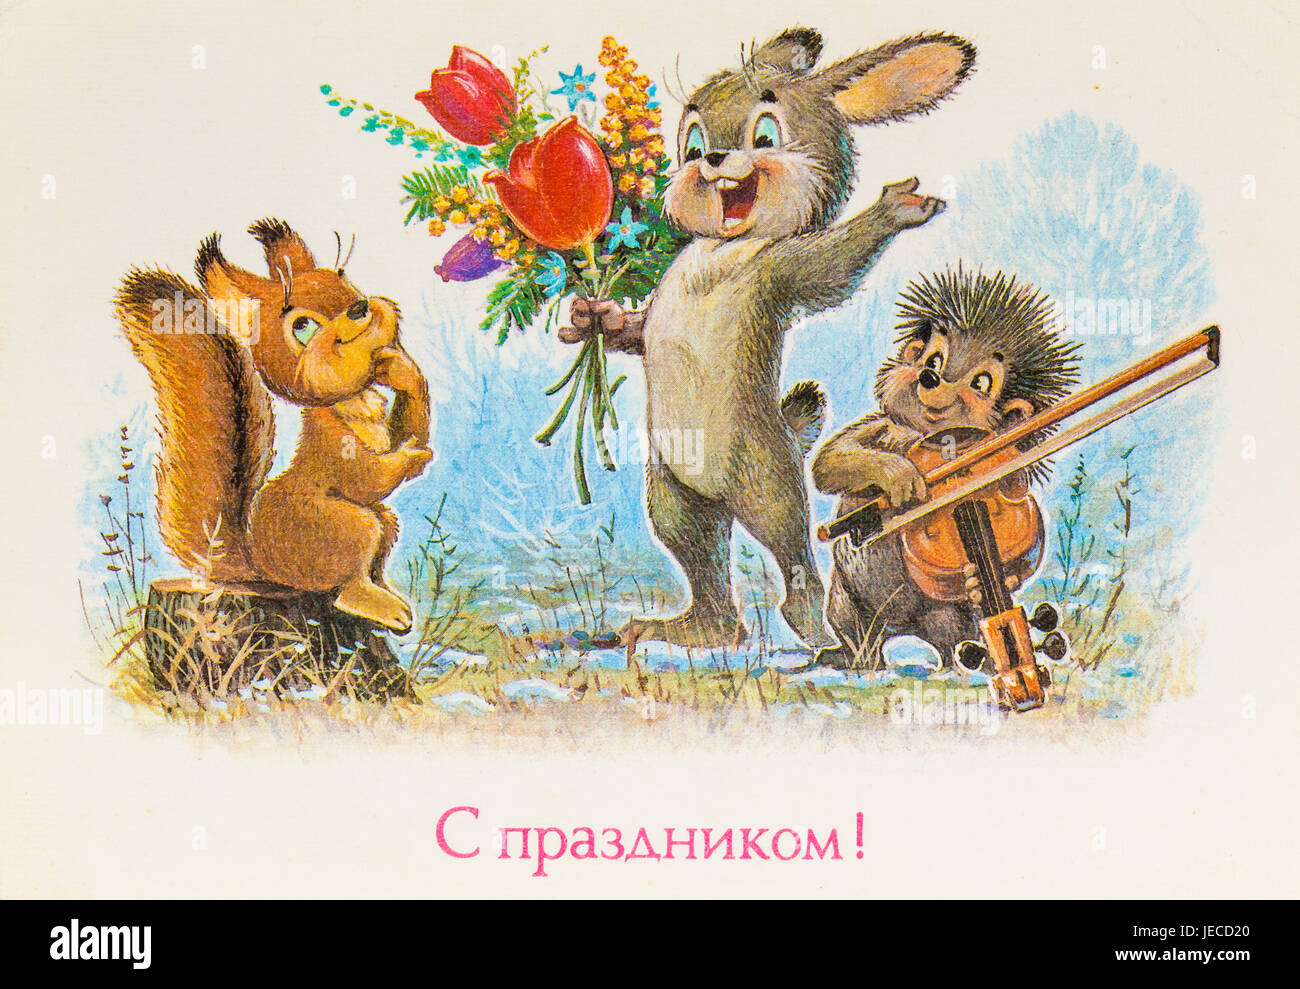 USSR - CIRCA 1990: Reproduction of antique postcard shows squirrel, rabbit and hedgehog, circa 1990. Russian text: - Stock Image